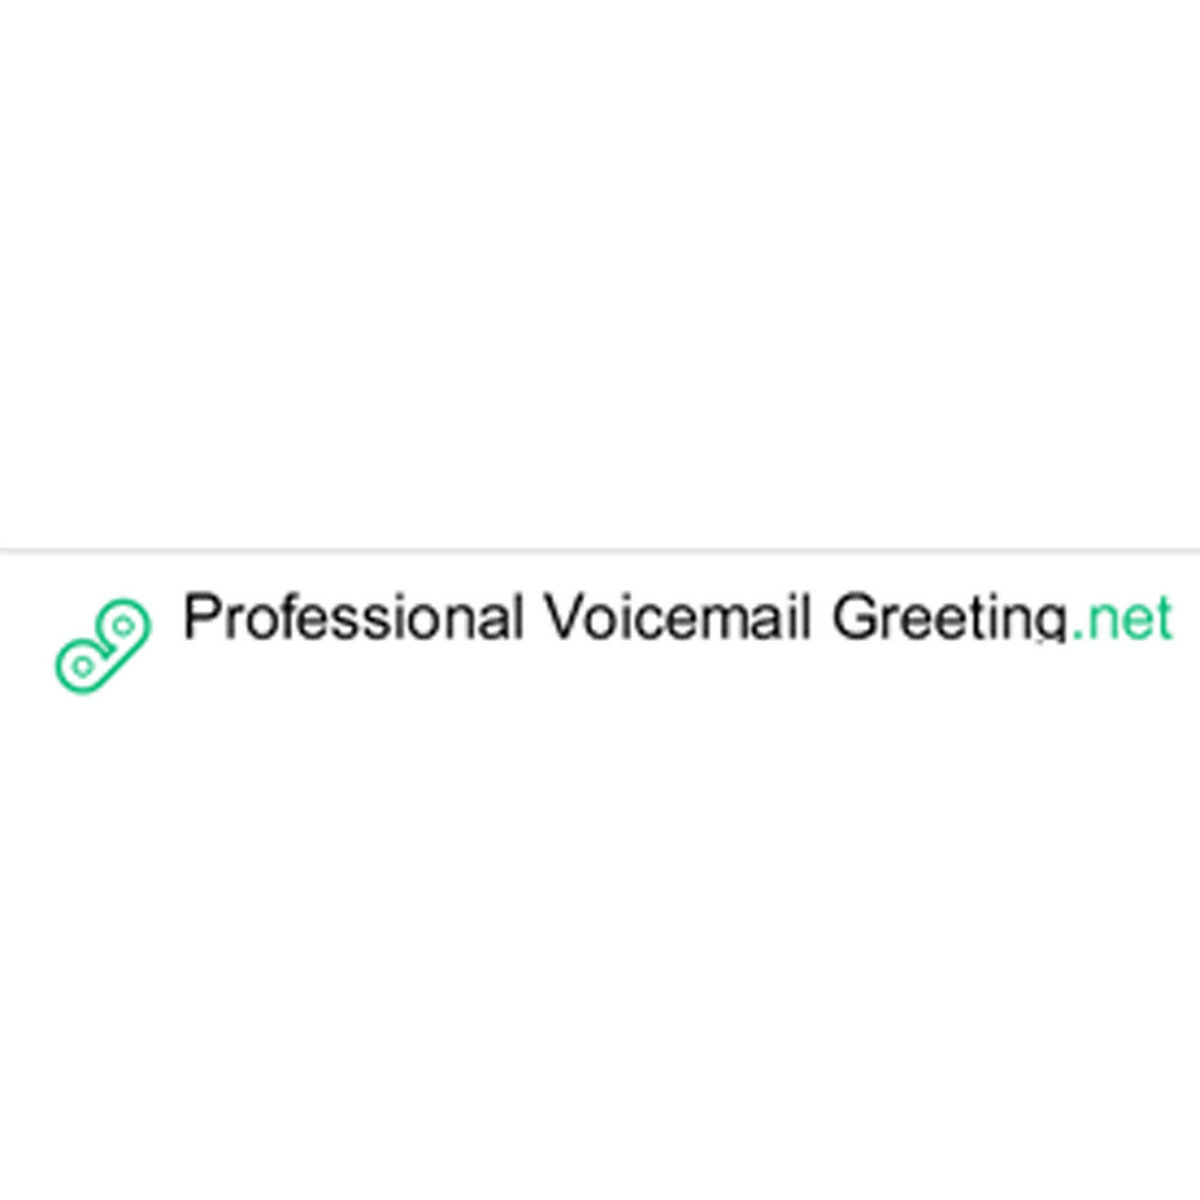 Best voicemail greetings professional voicemail greeting best voicemail greetings m4hsunfo